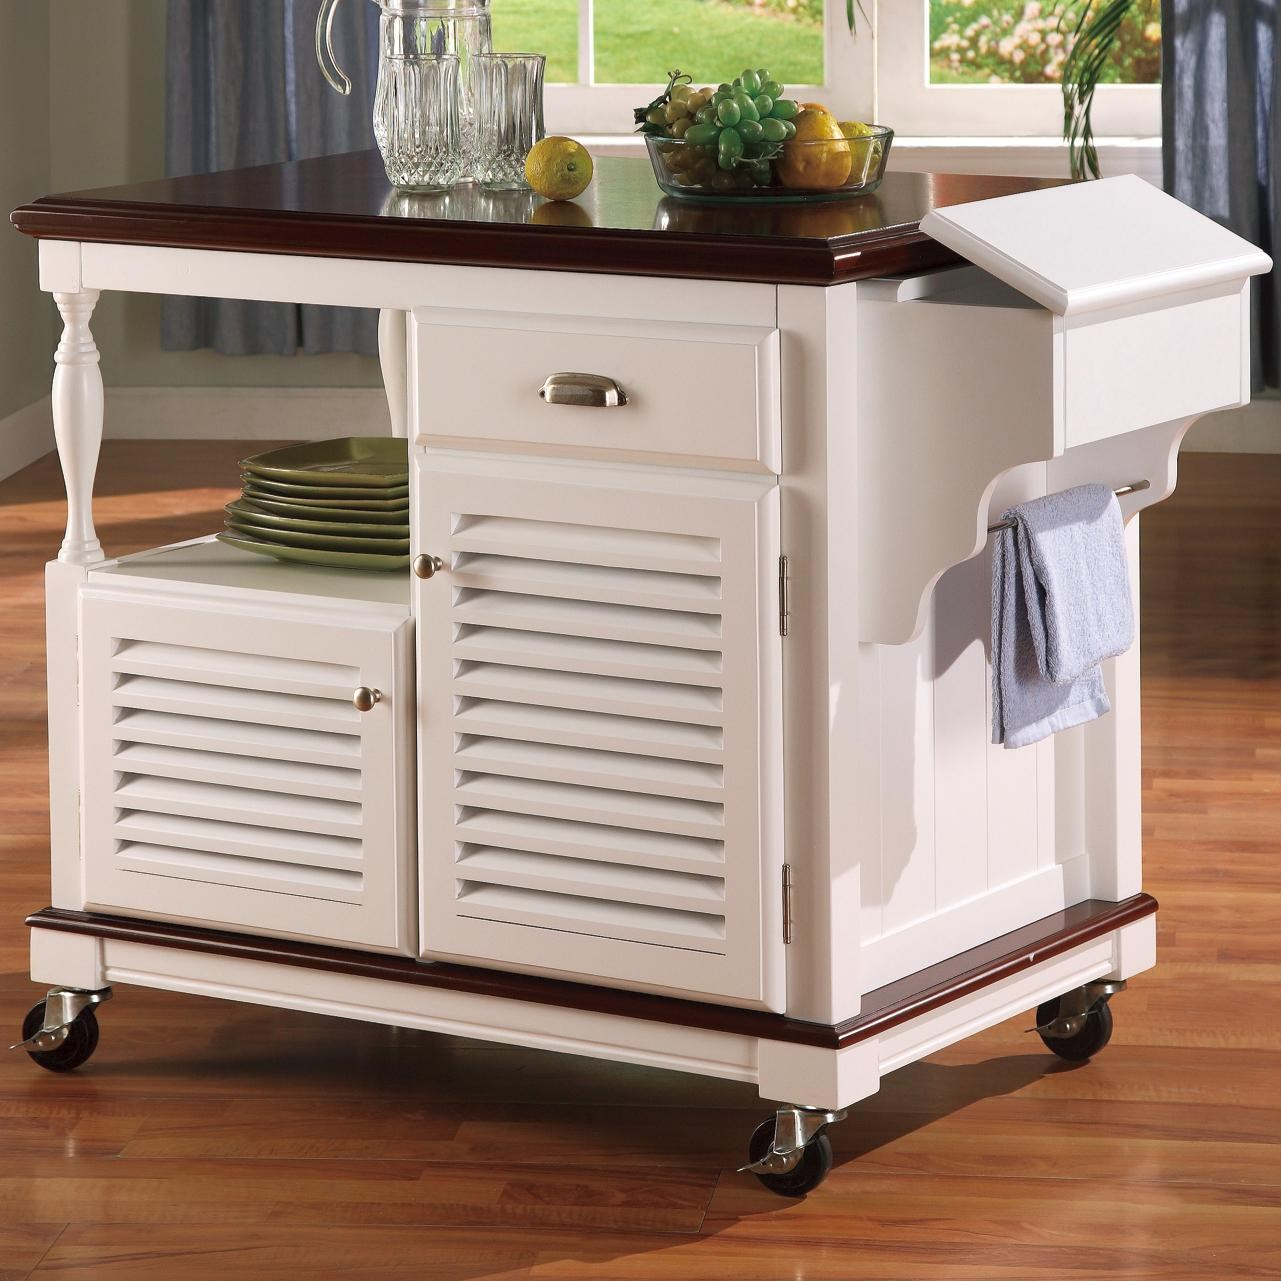 kitchen carts flooring for coaster 910013 cherry topped cart dunk bright furniture islands